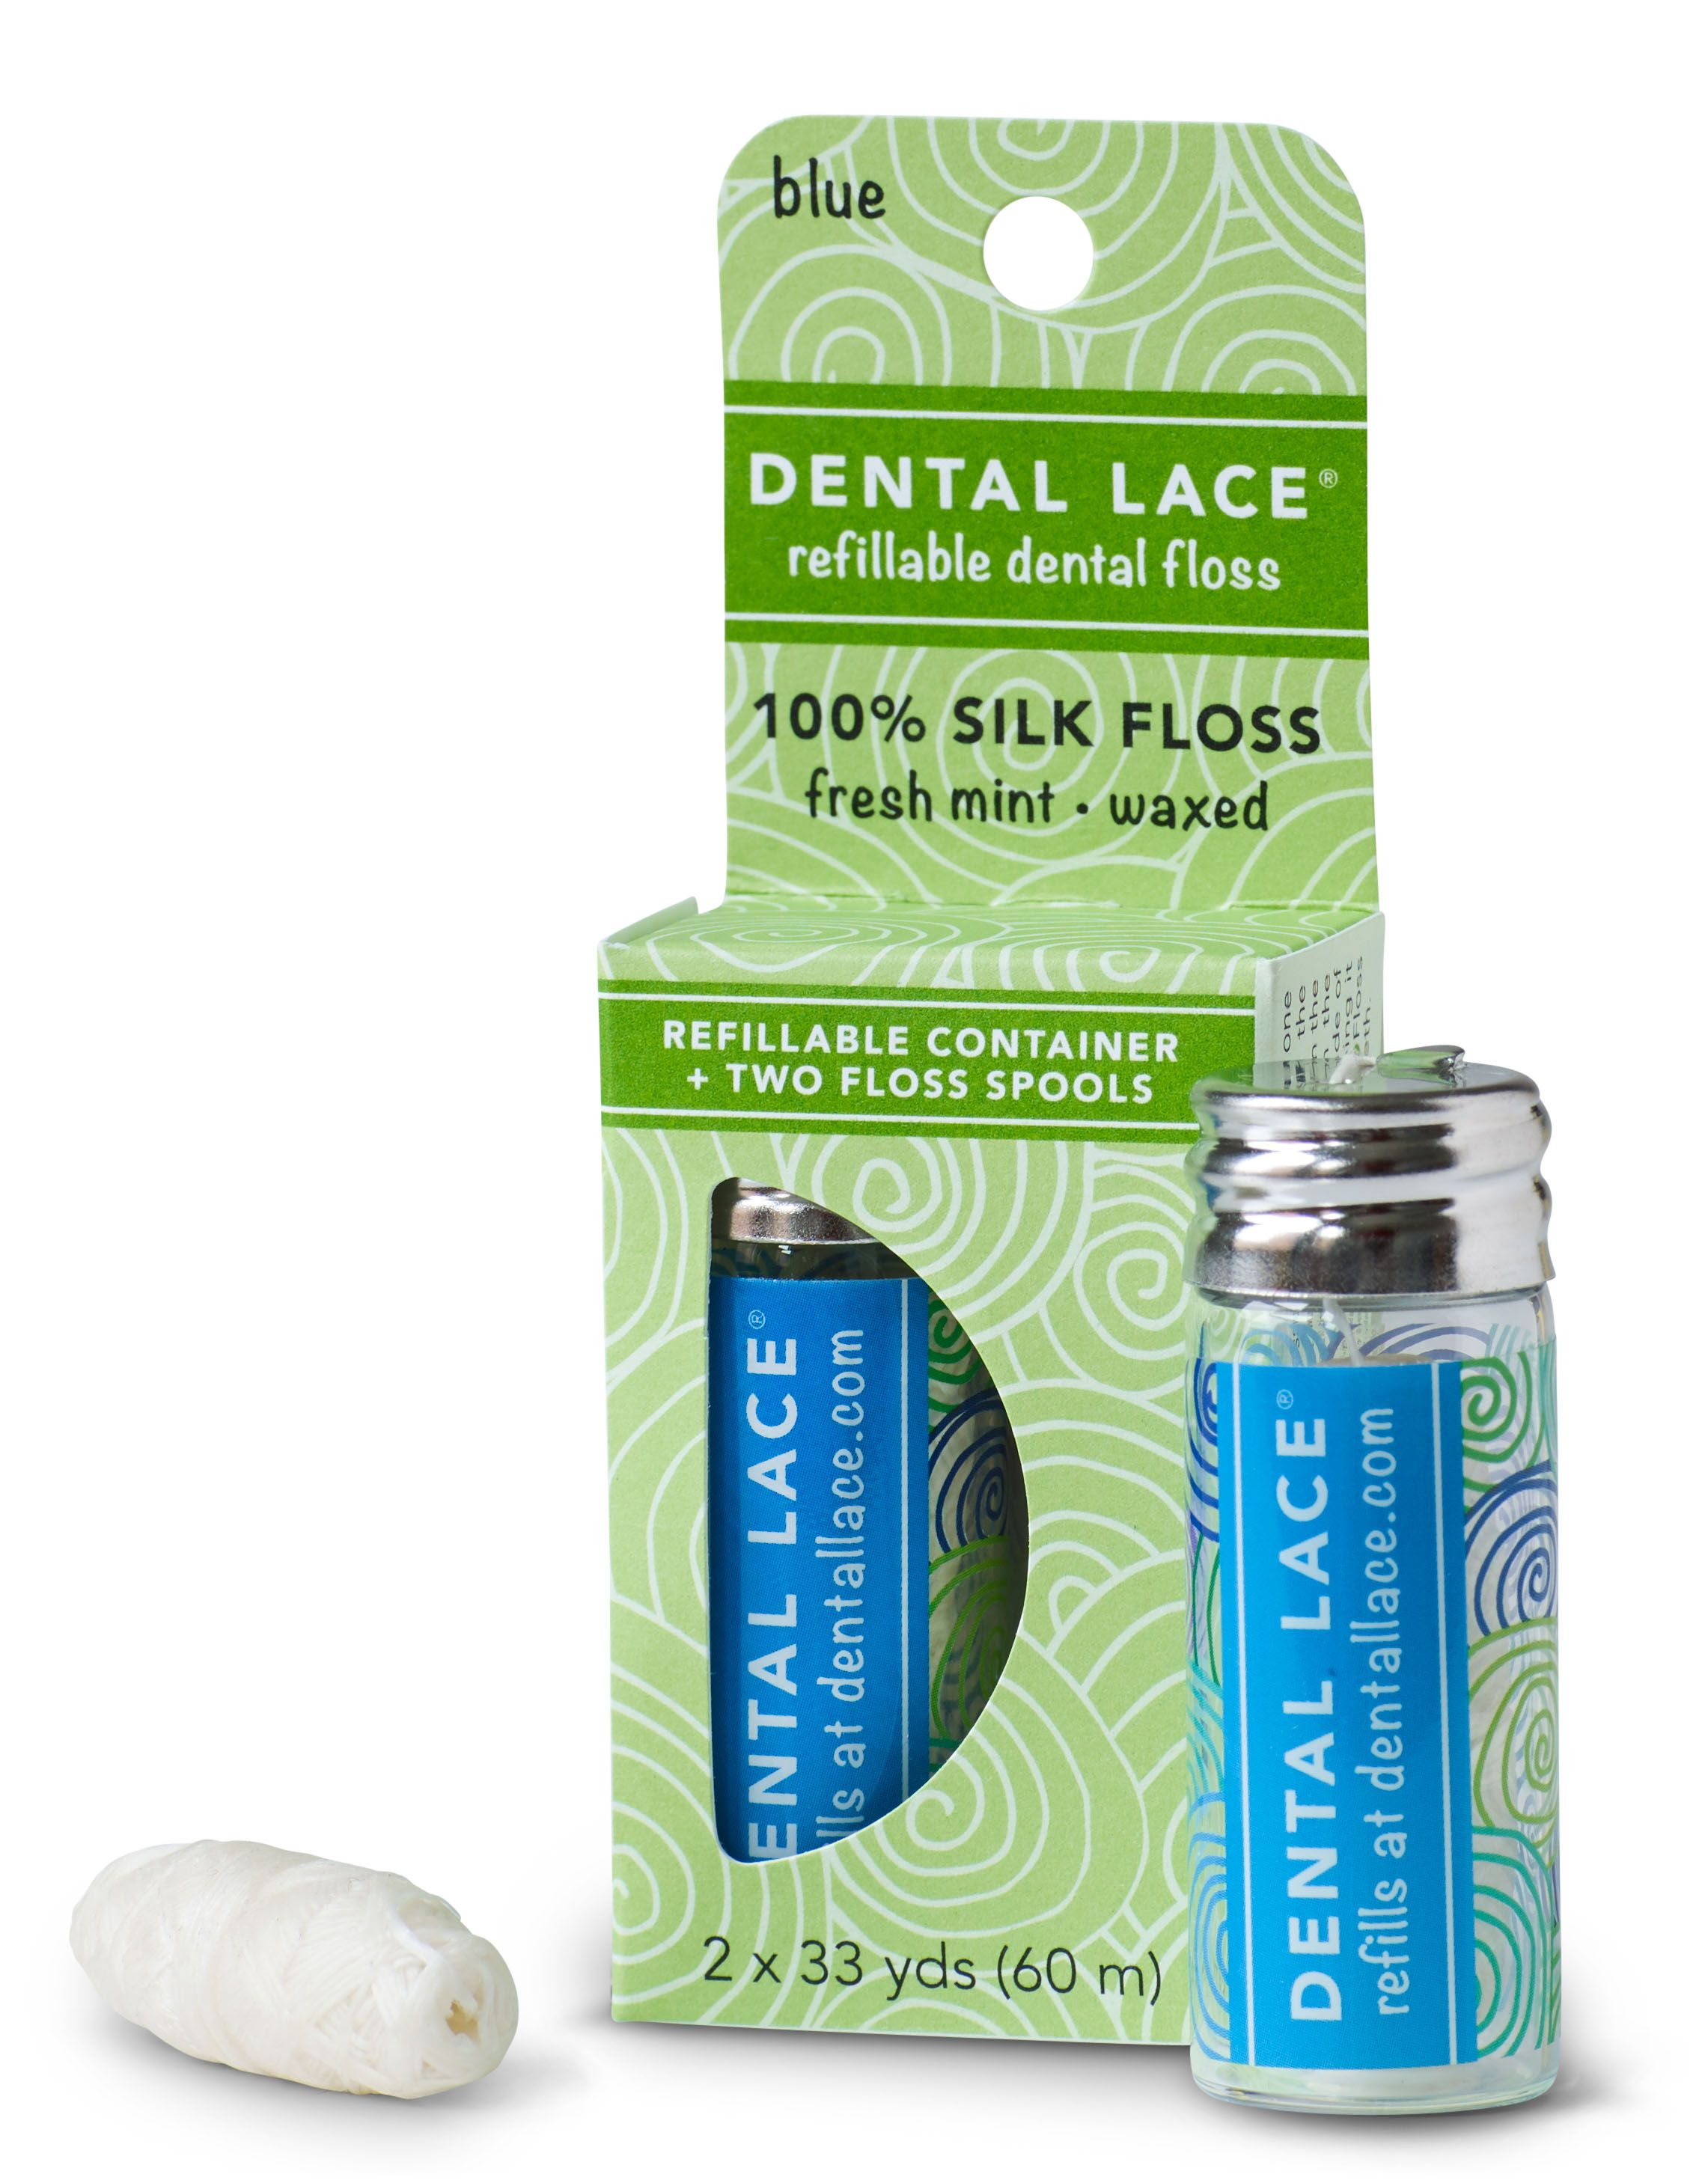 b5814ee99 Biodegradable Dental Floss in Refillable Glass Dispenser is the perfect  eco-friendly